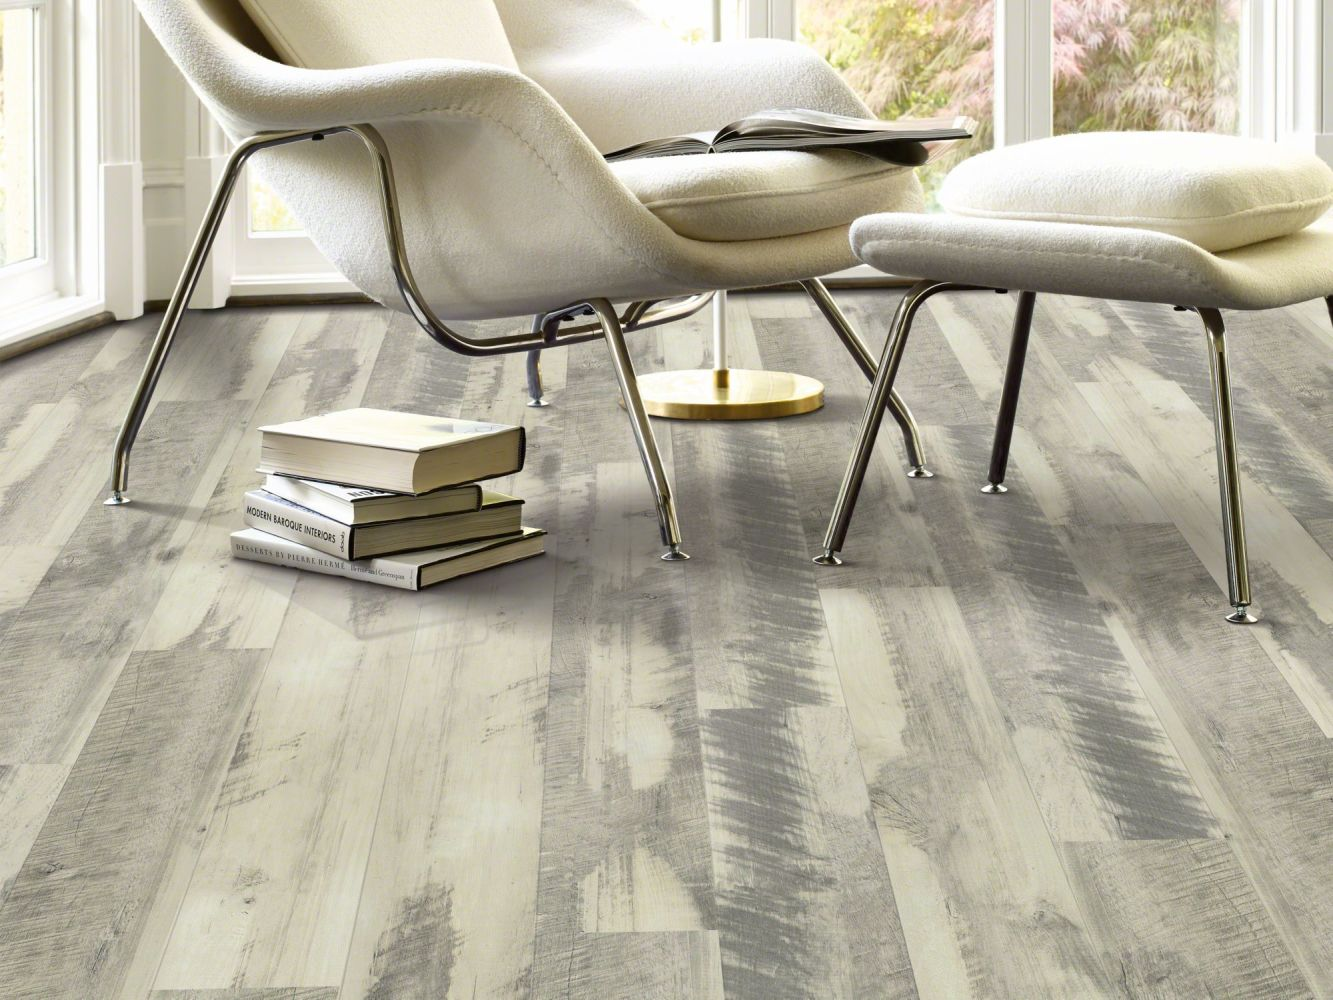 Shaw Floors Resilient Residential Endura Plus Gray Barnwood 00142_0736V